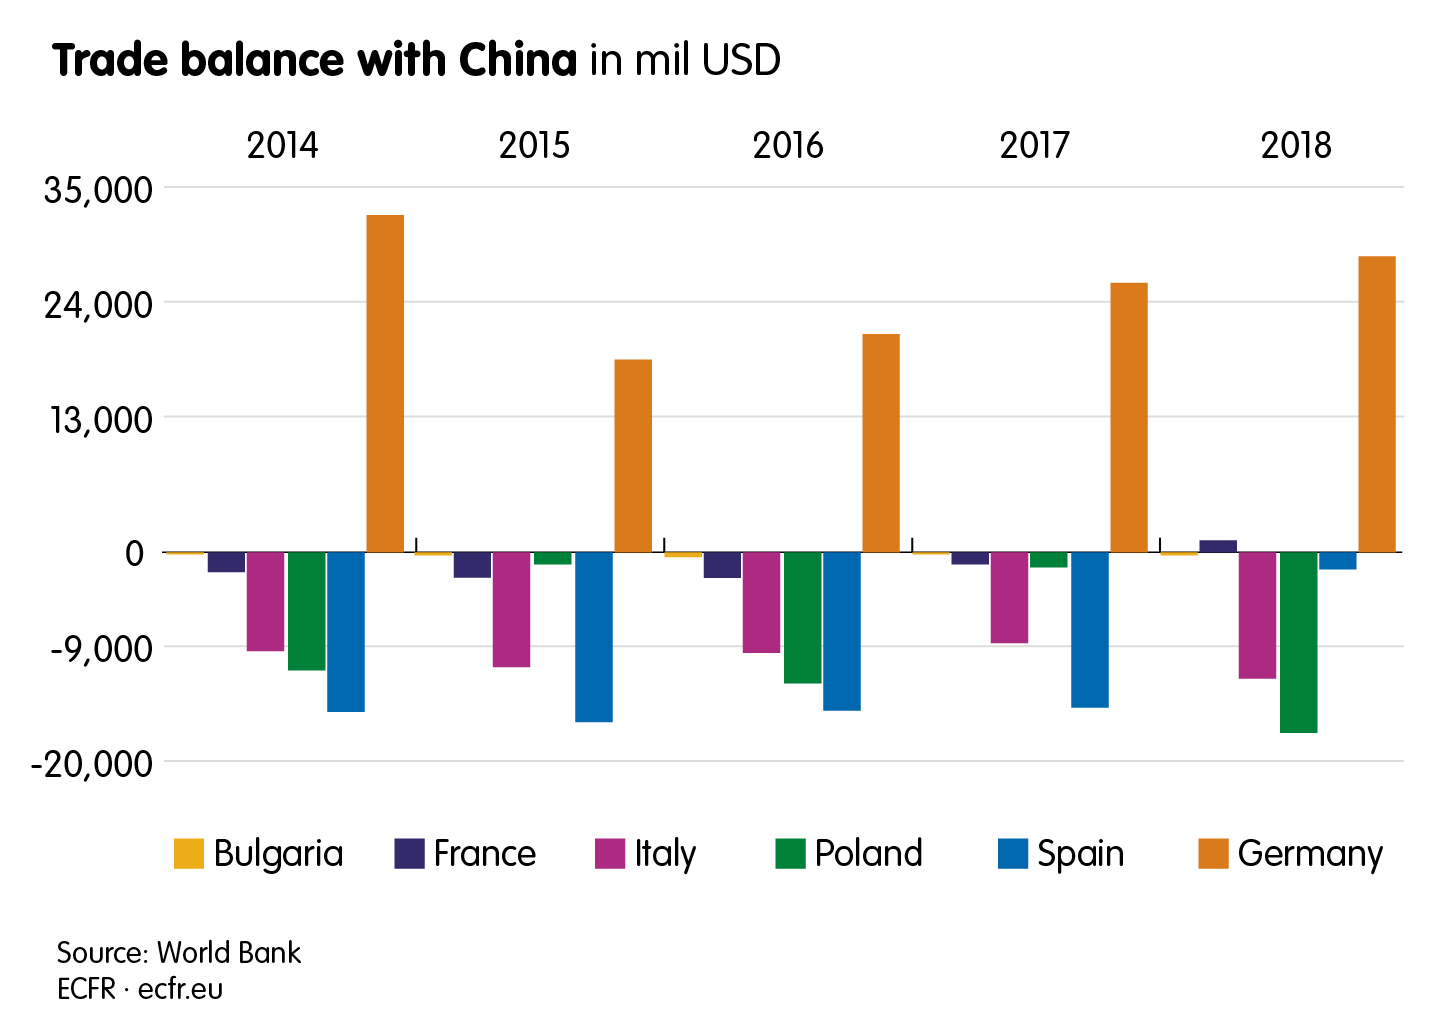 Trade balance with China in USD millions